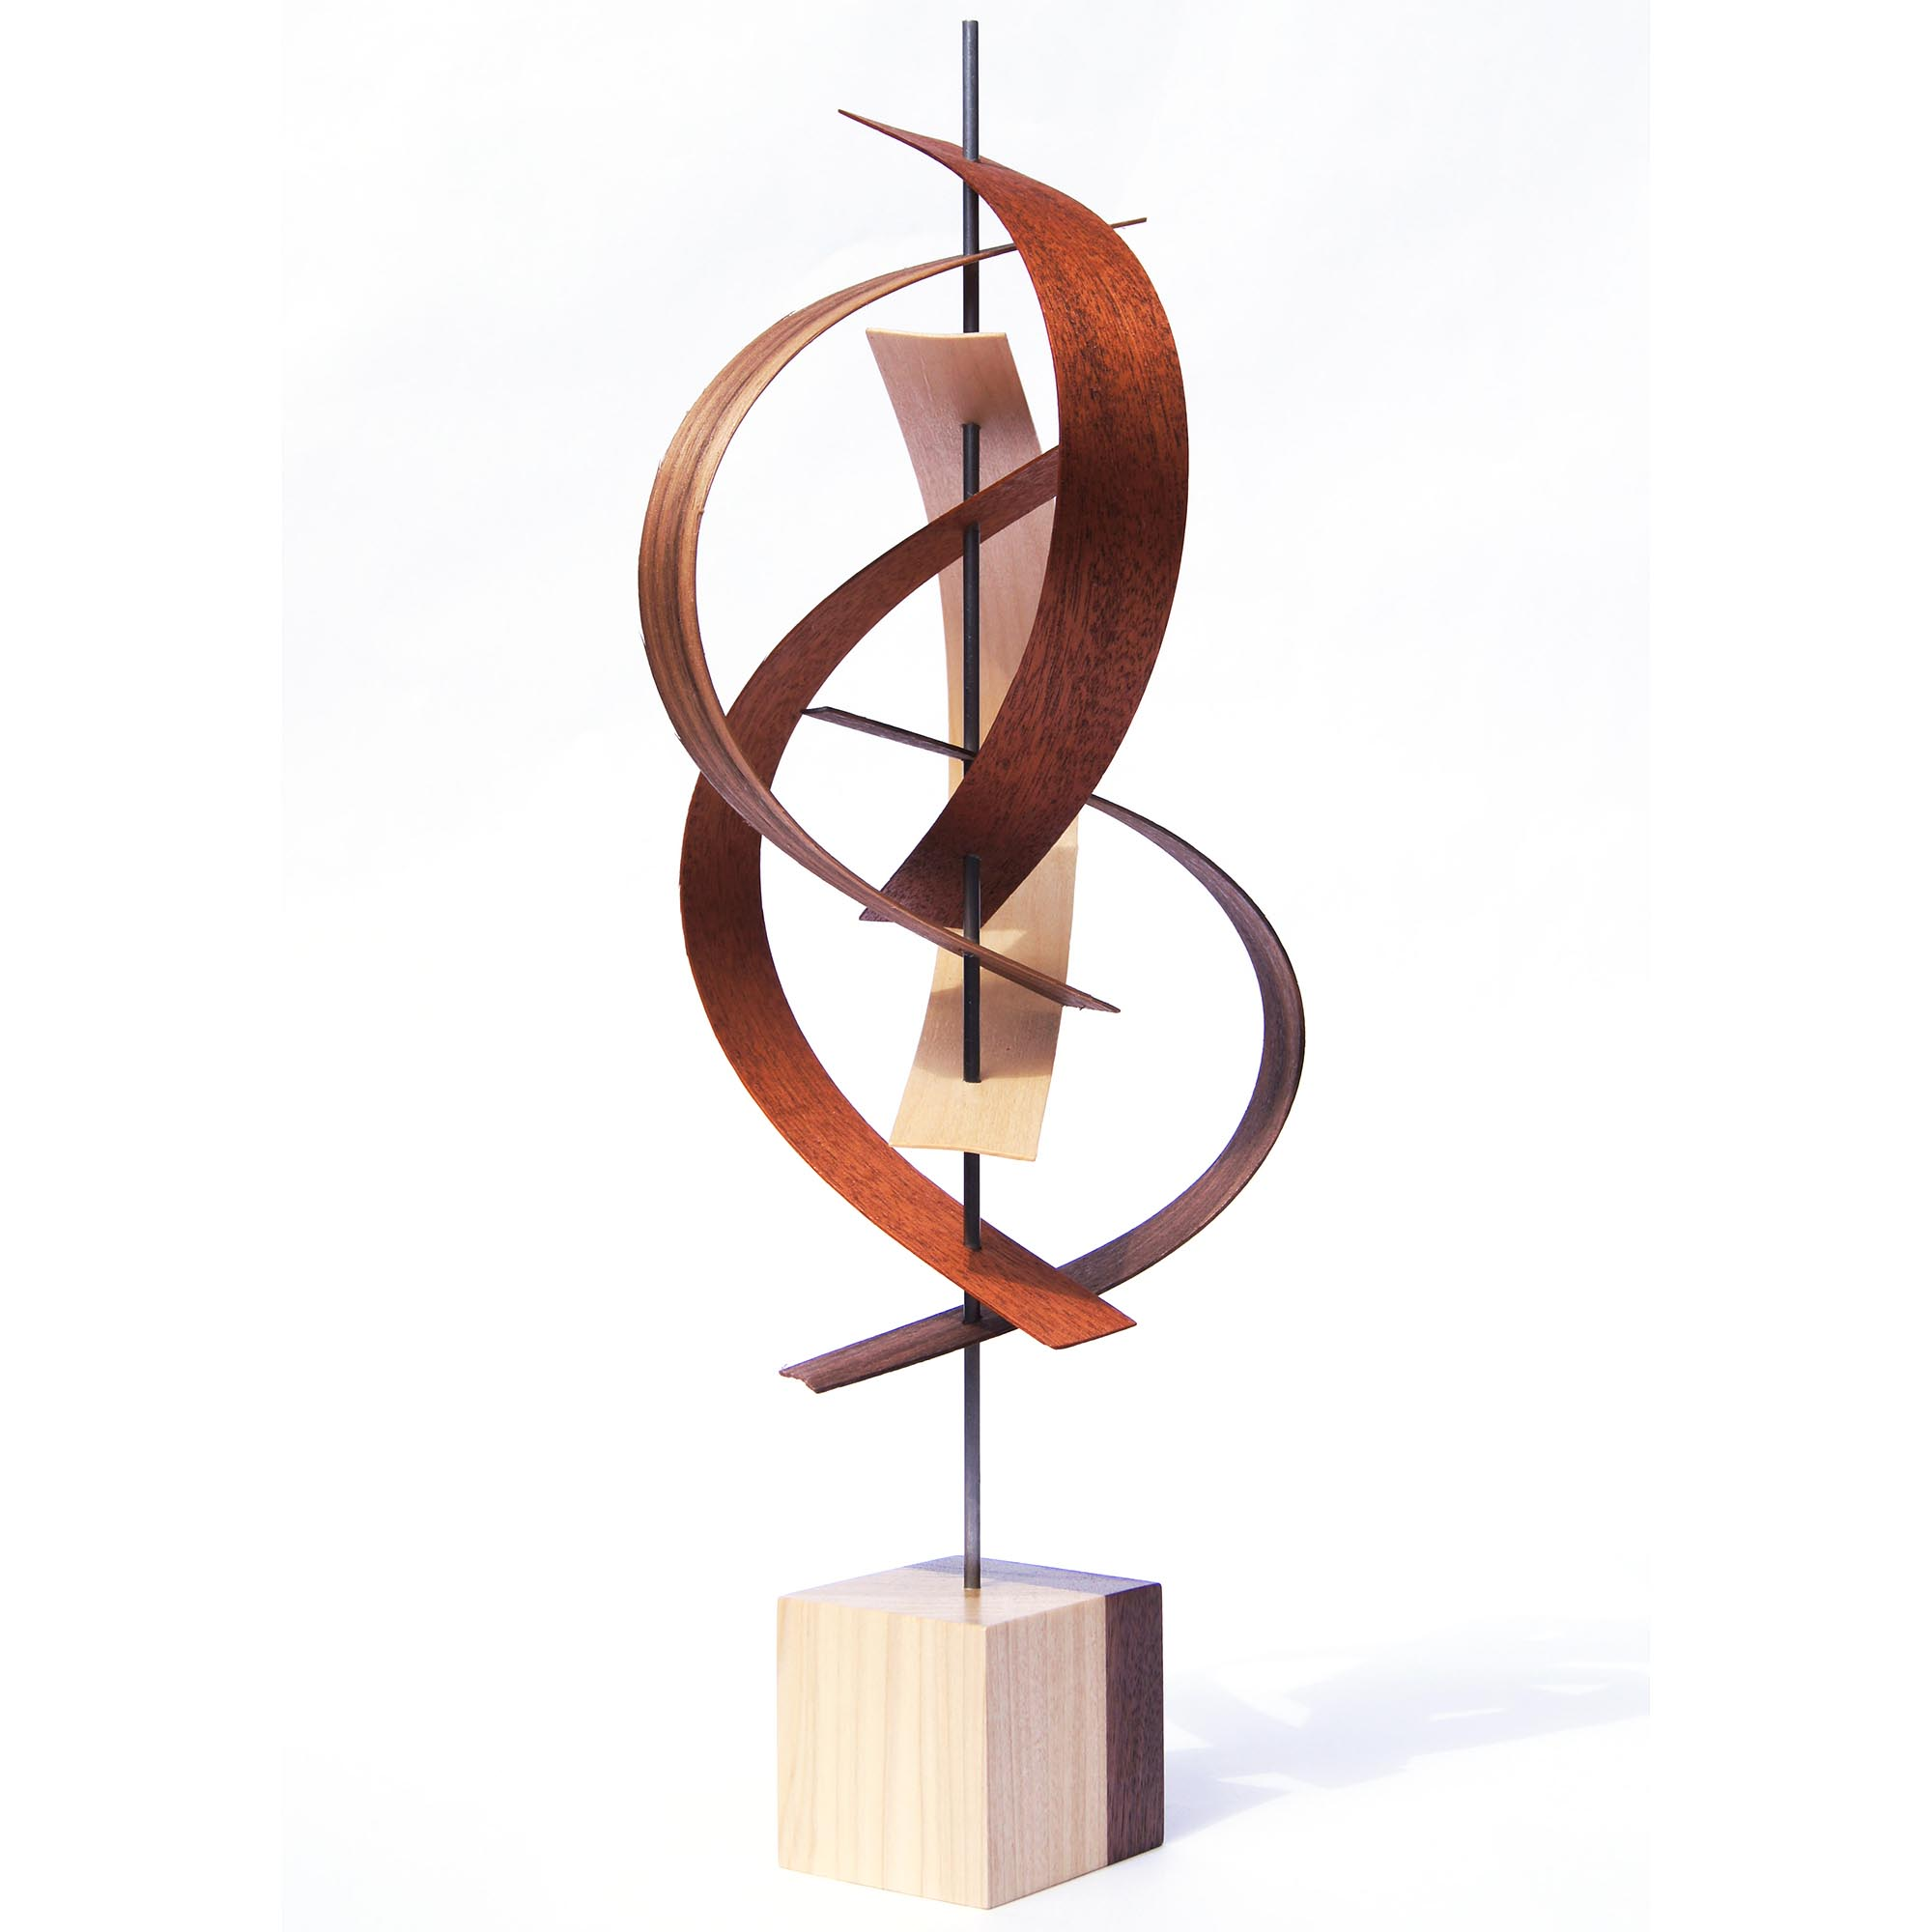 metal art studio sails by jeff linenkugel modern wood sculpture rh moderncrowd com image sculpture moderne